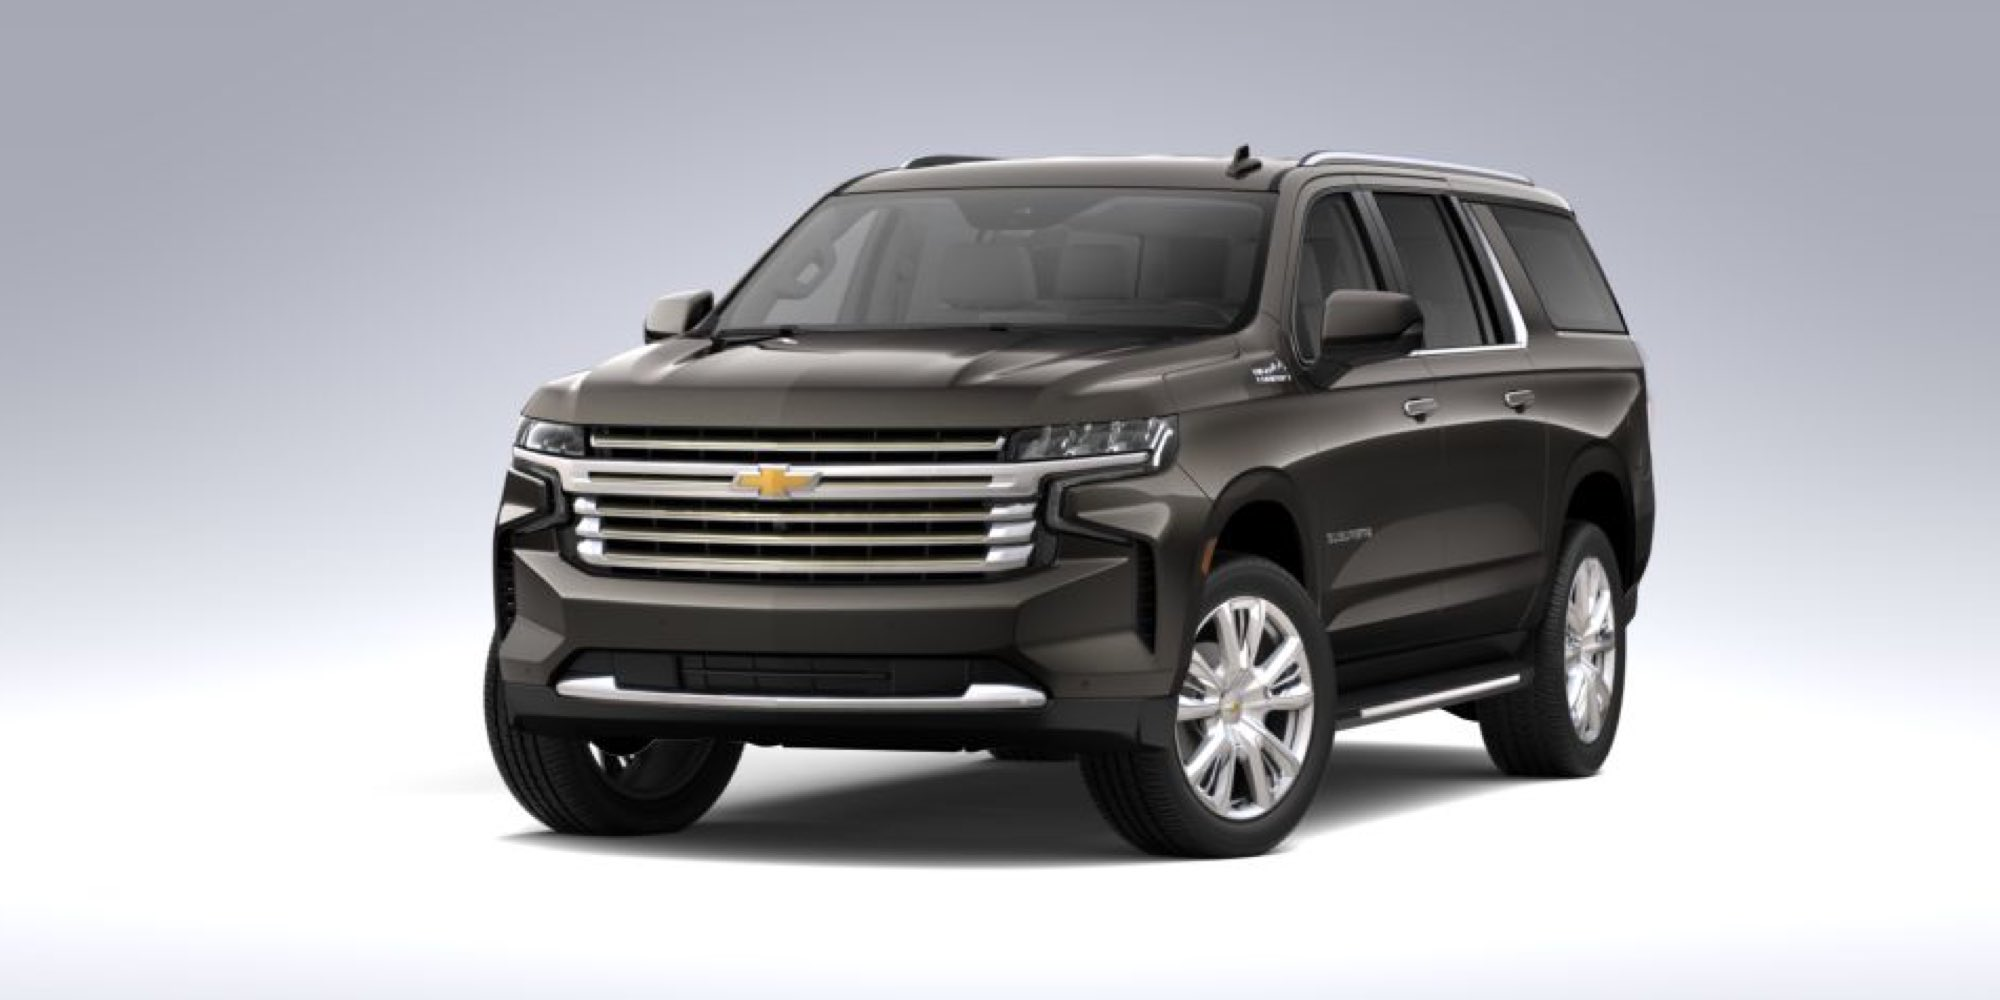 2021 Chevy Suburban in Graywood Metallic